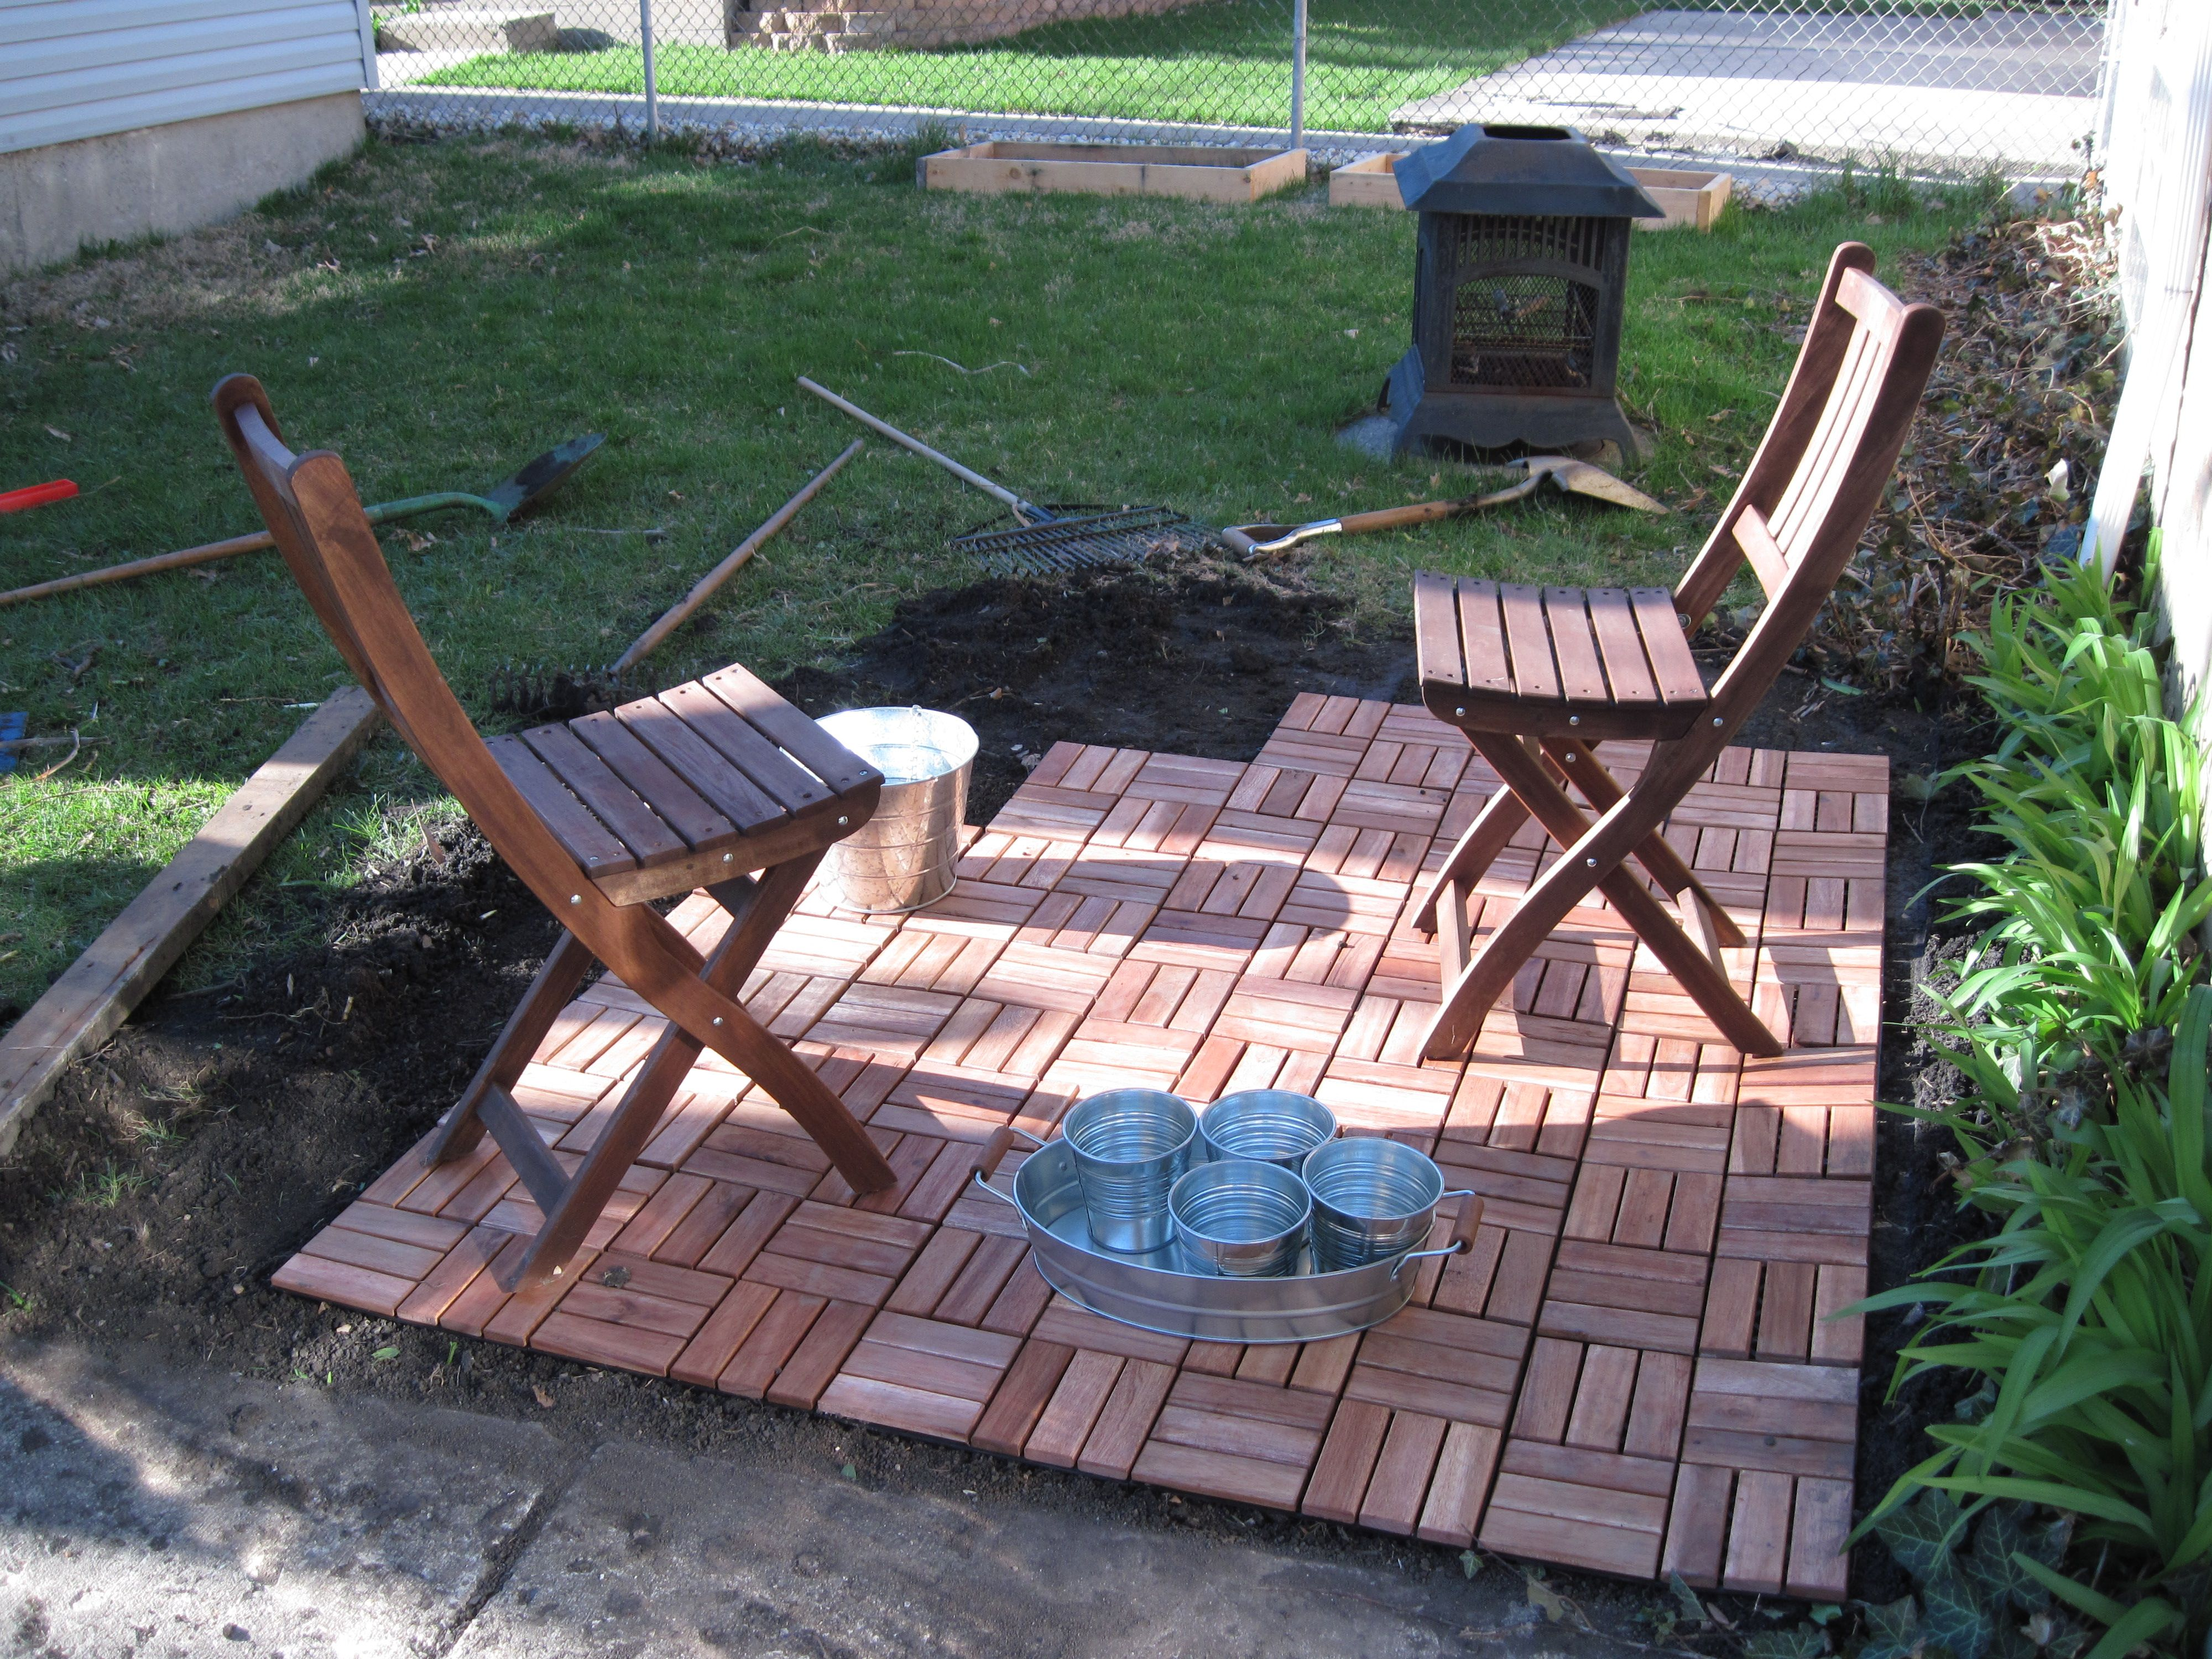 Backyard plans coming together decking backyard and curb appeal ikea patio tiles directly on ground dailygadgetfo Images